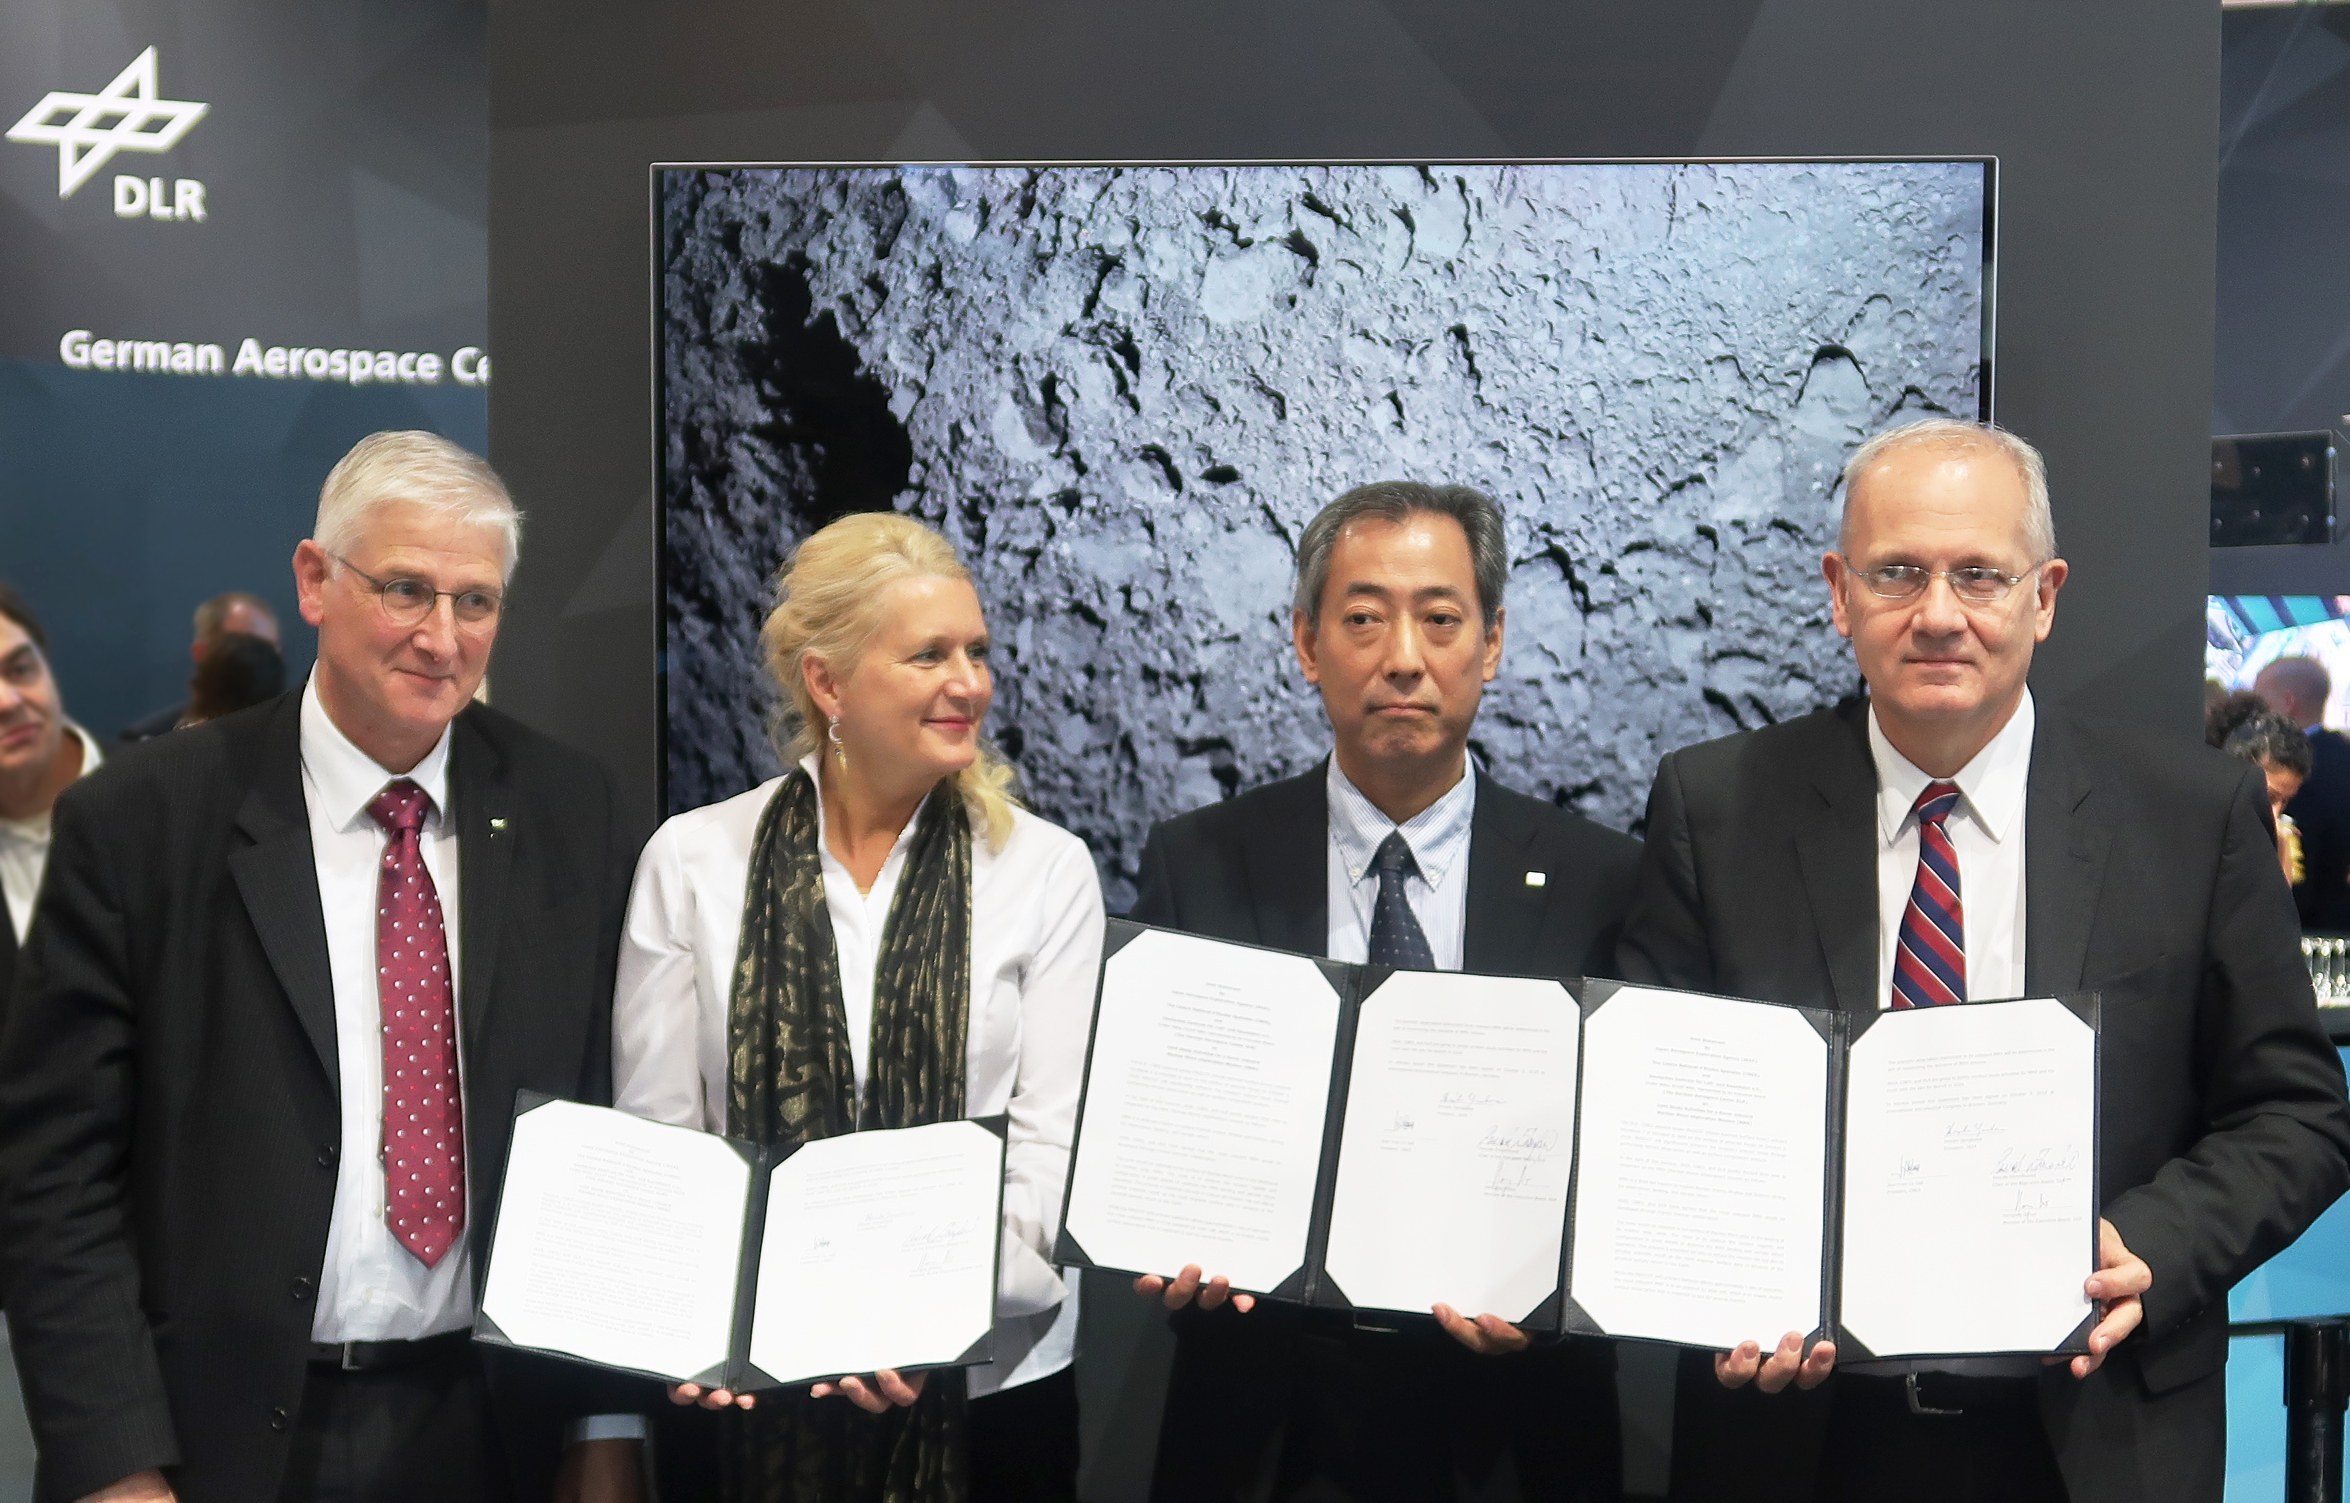 http://global.jaxa.jp/press/2018/10/images/20181003_mmx.jpg